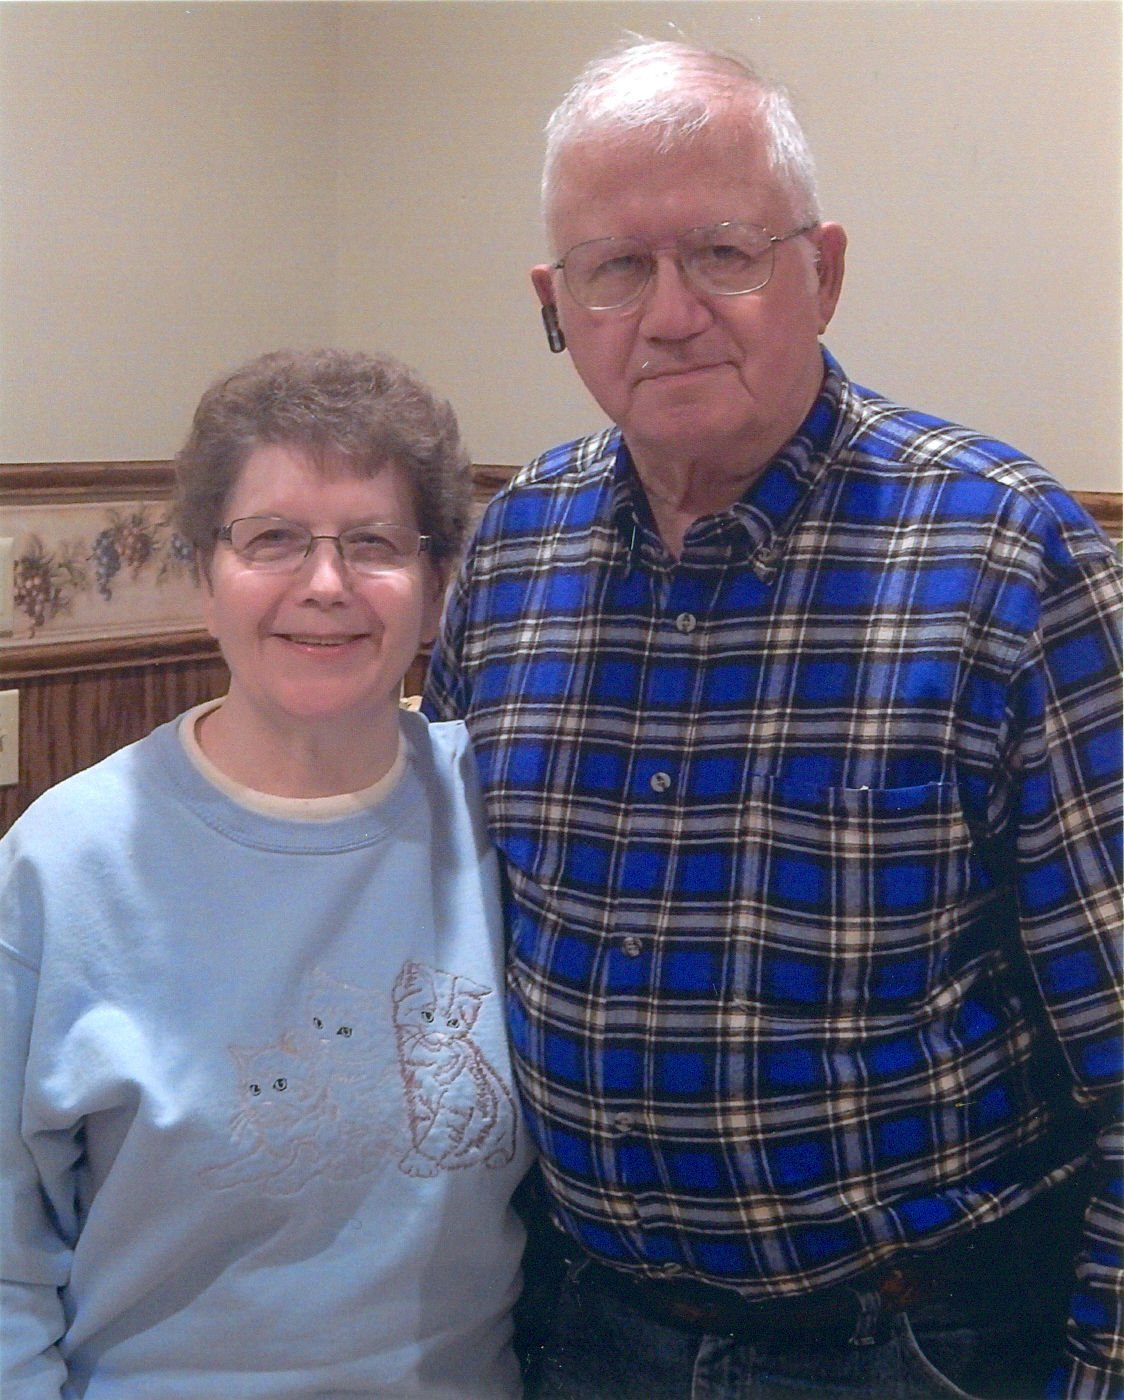 Roger and Bonnie Strege